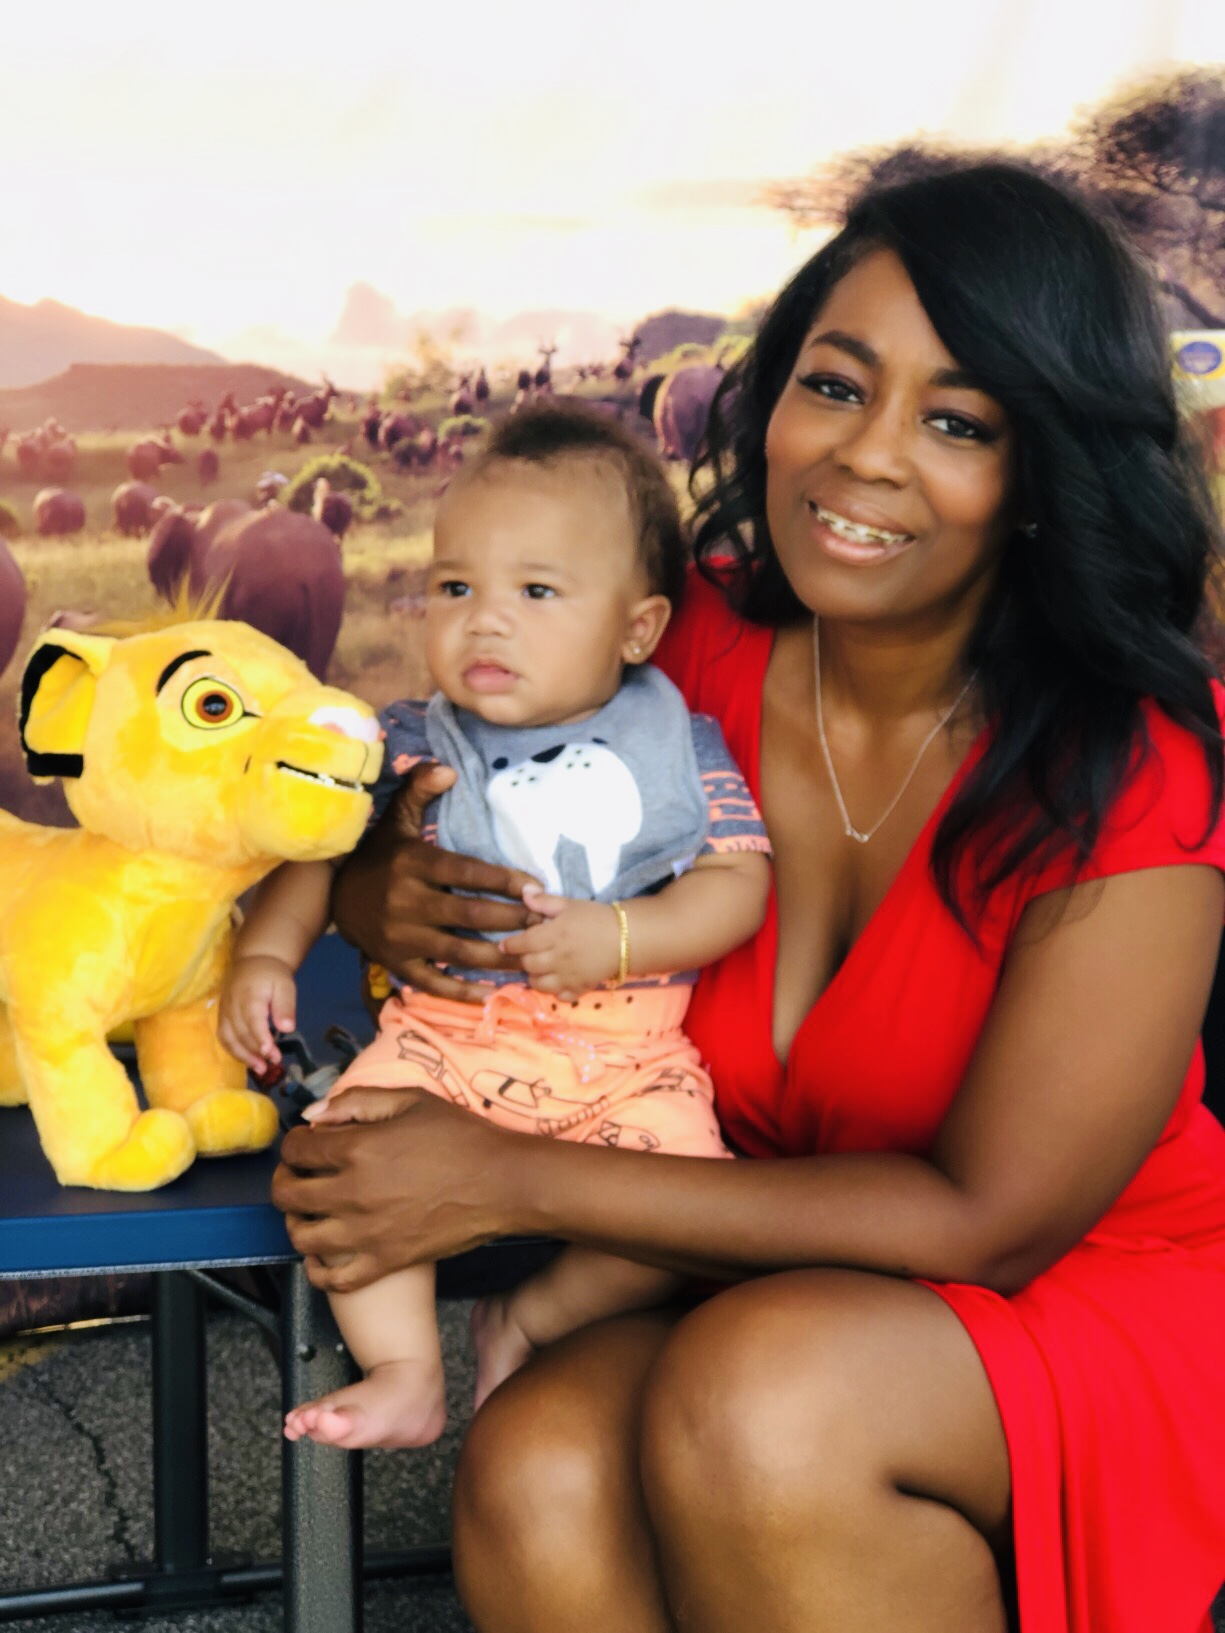 Disney The Lion King Experience At Walmart With Special Appearance By Kenya Moore